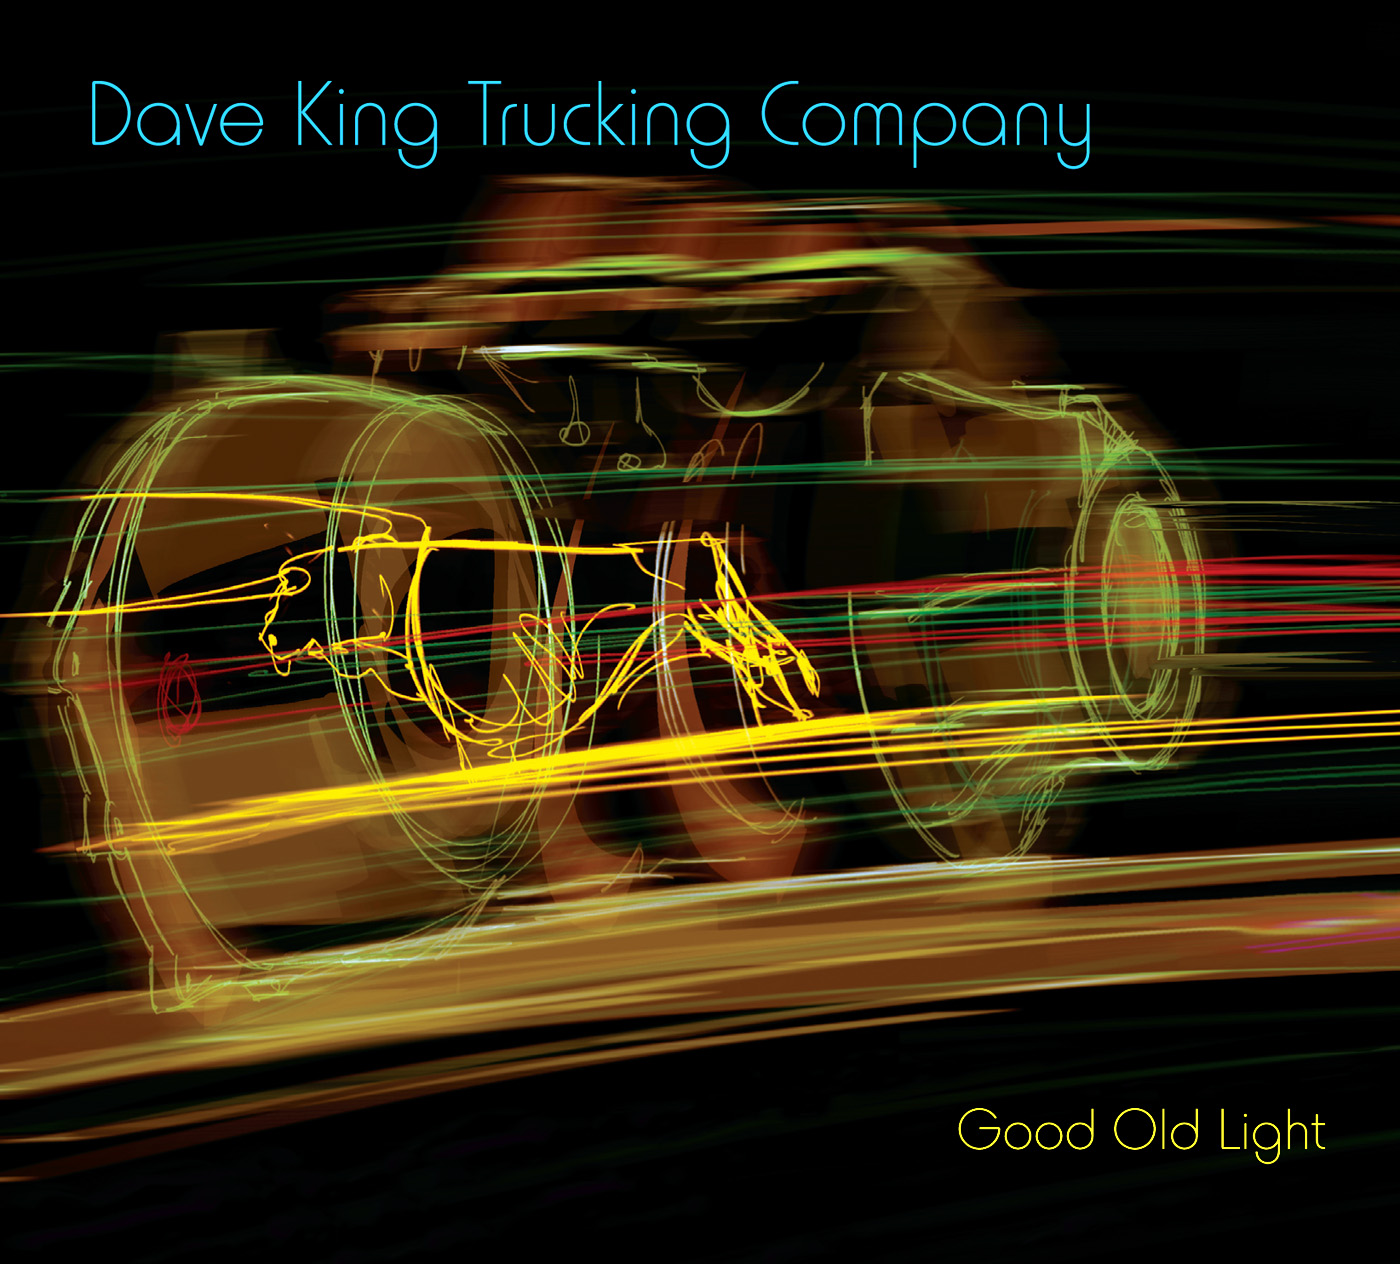 Good Old Light by Dave King Trucking Company cover